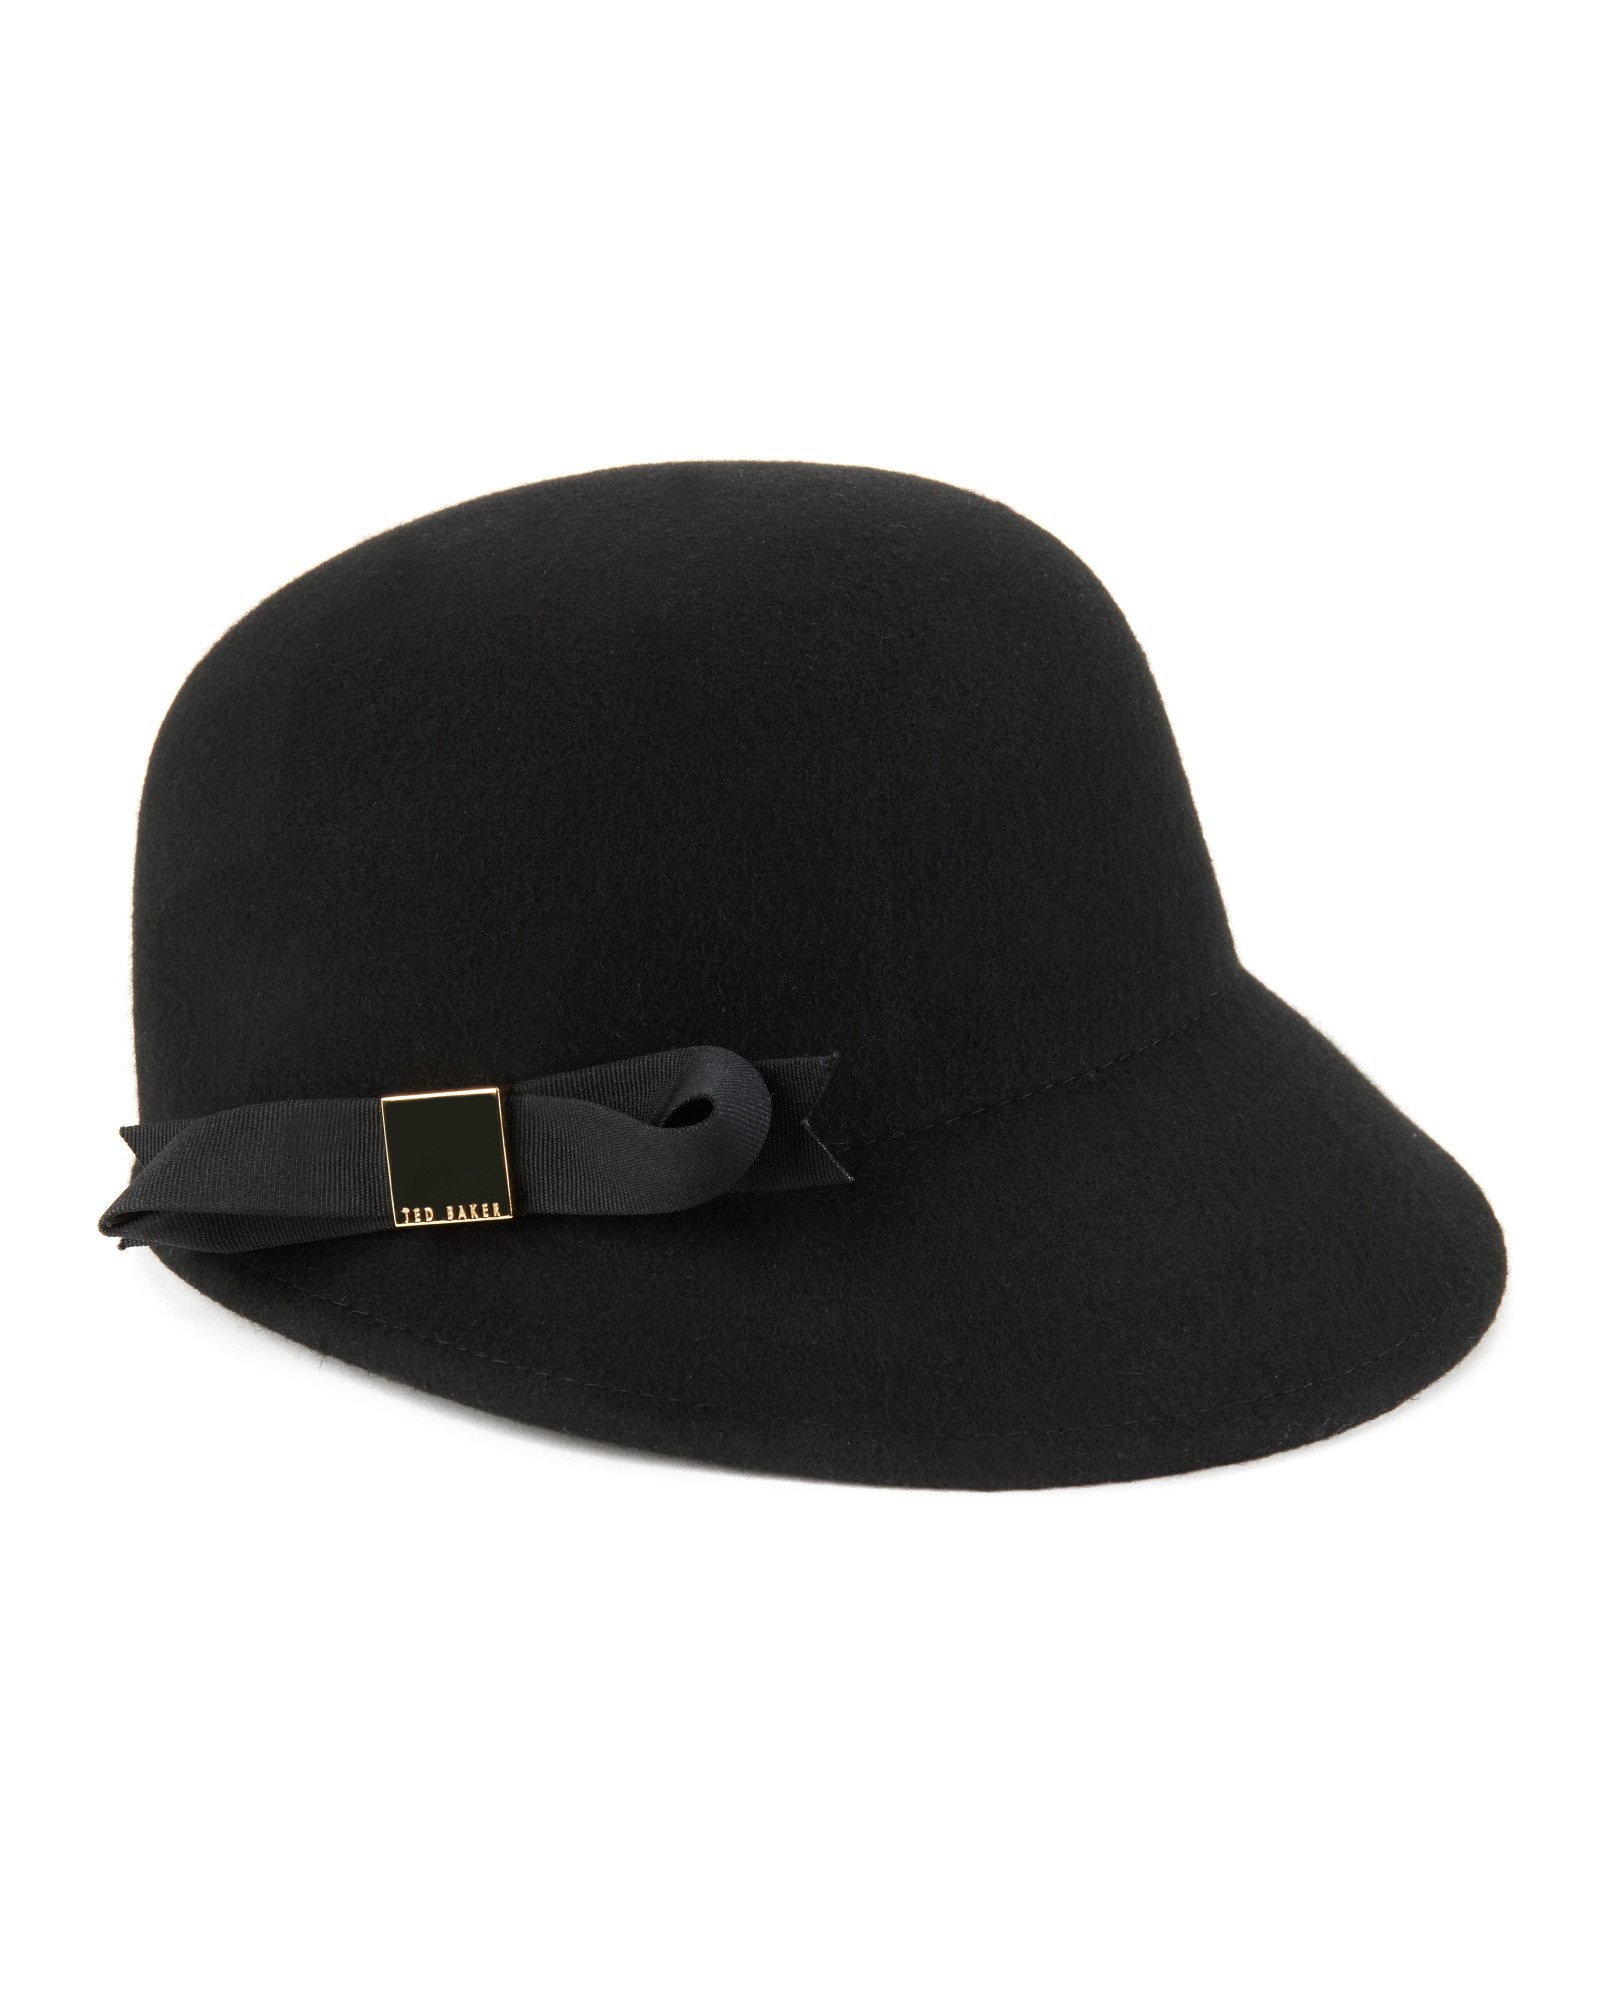 7fe916b8f53 Lyst - Ted Baker Bow Felt Cap in Black